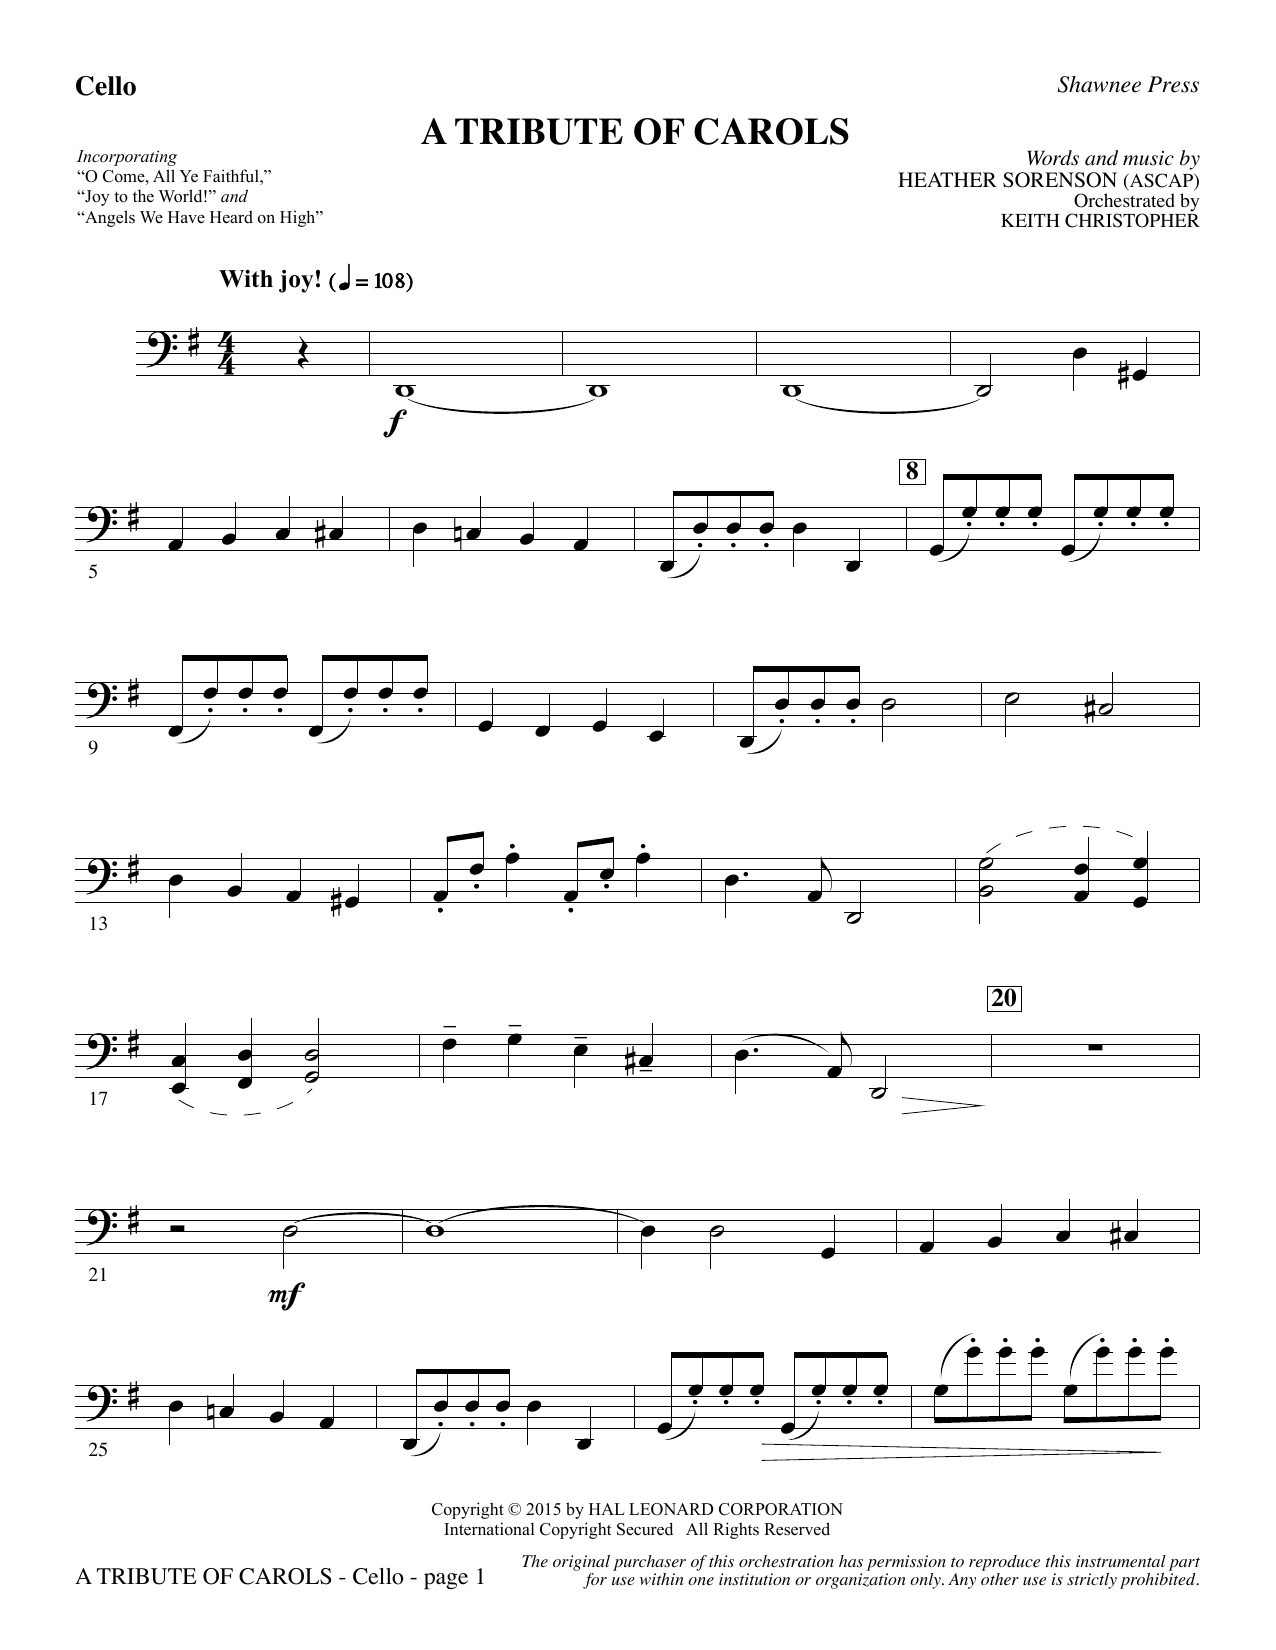 Heather Sorenson A Tribute of Carols - Cello sheet music notes and chords. Download Printable PDF.